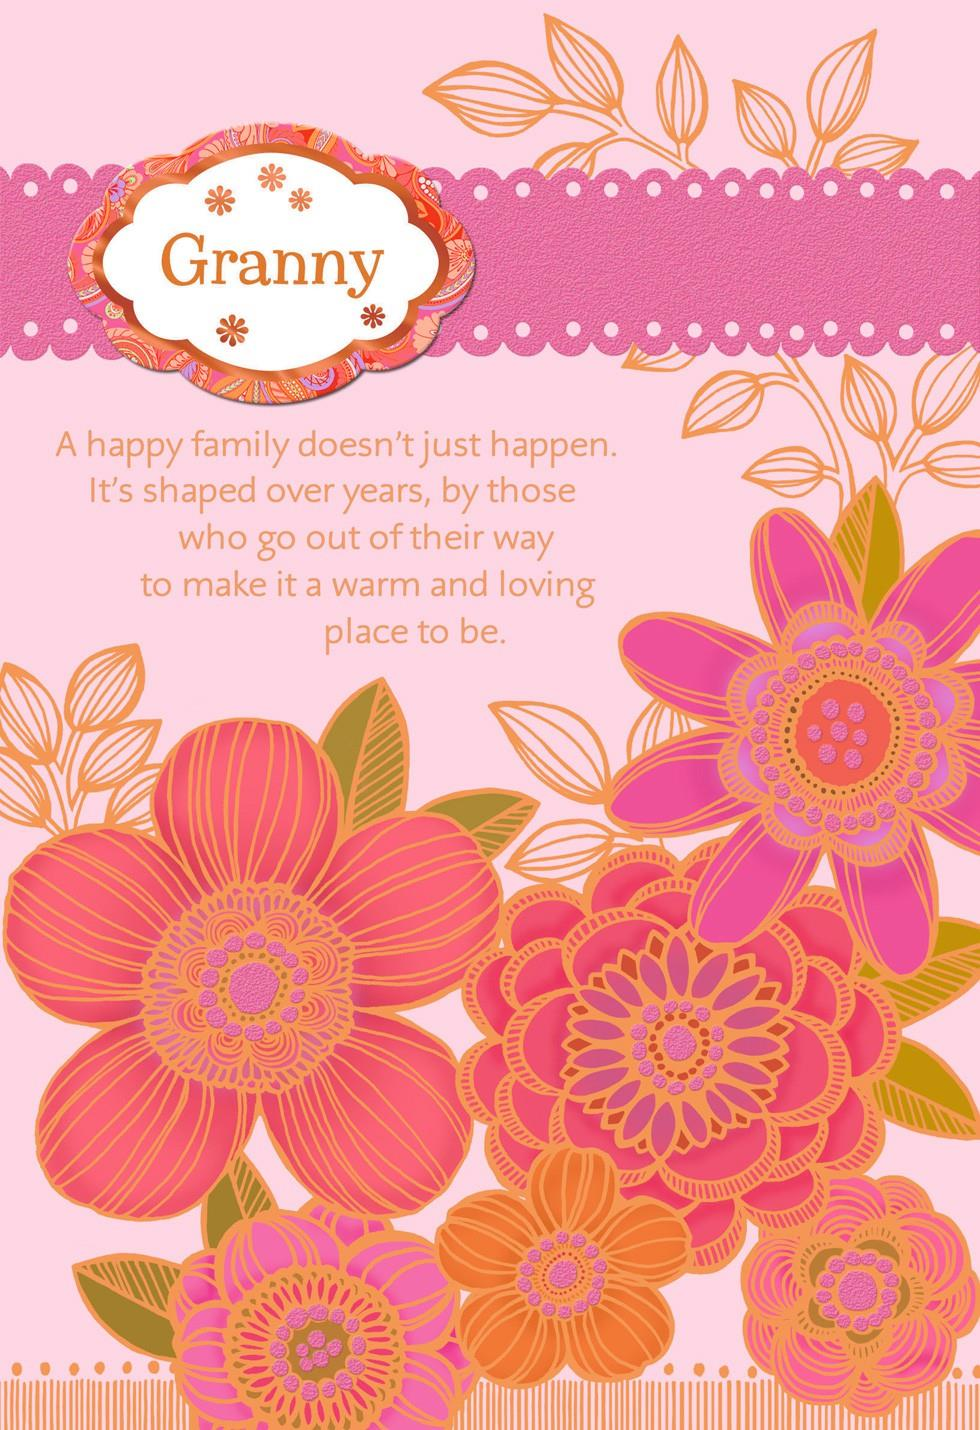 birthday stickers for cards ; special-names-for-grandma-birthday-card-with-personalization-stickers-root-399fbd5142_1470_1